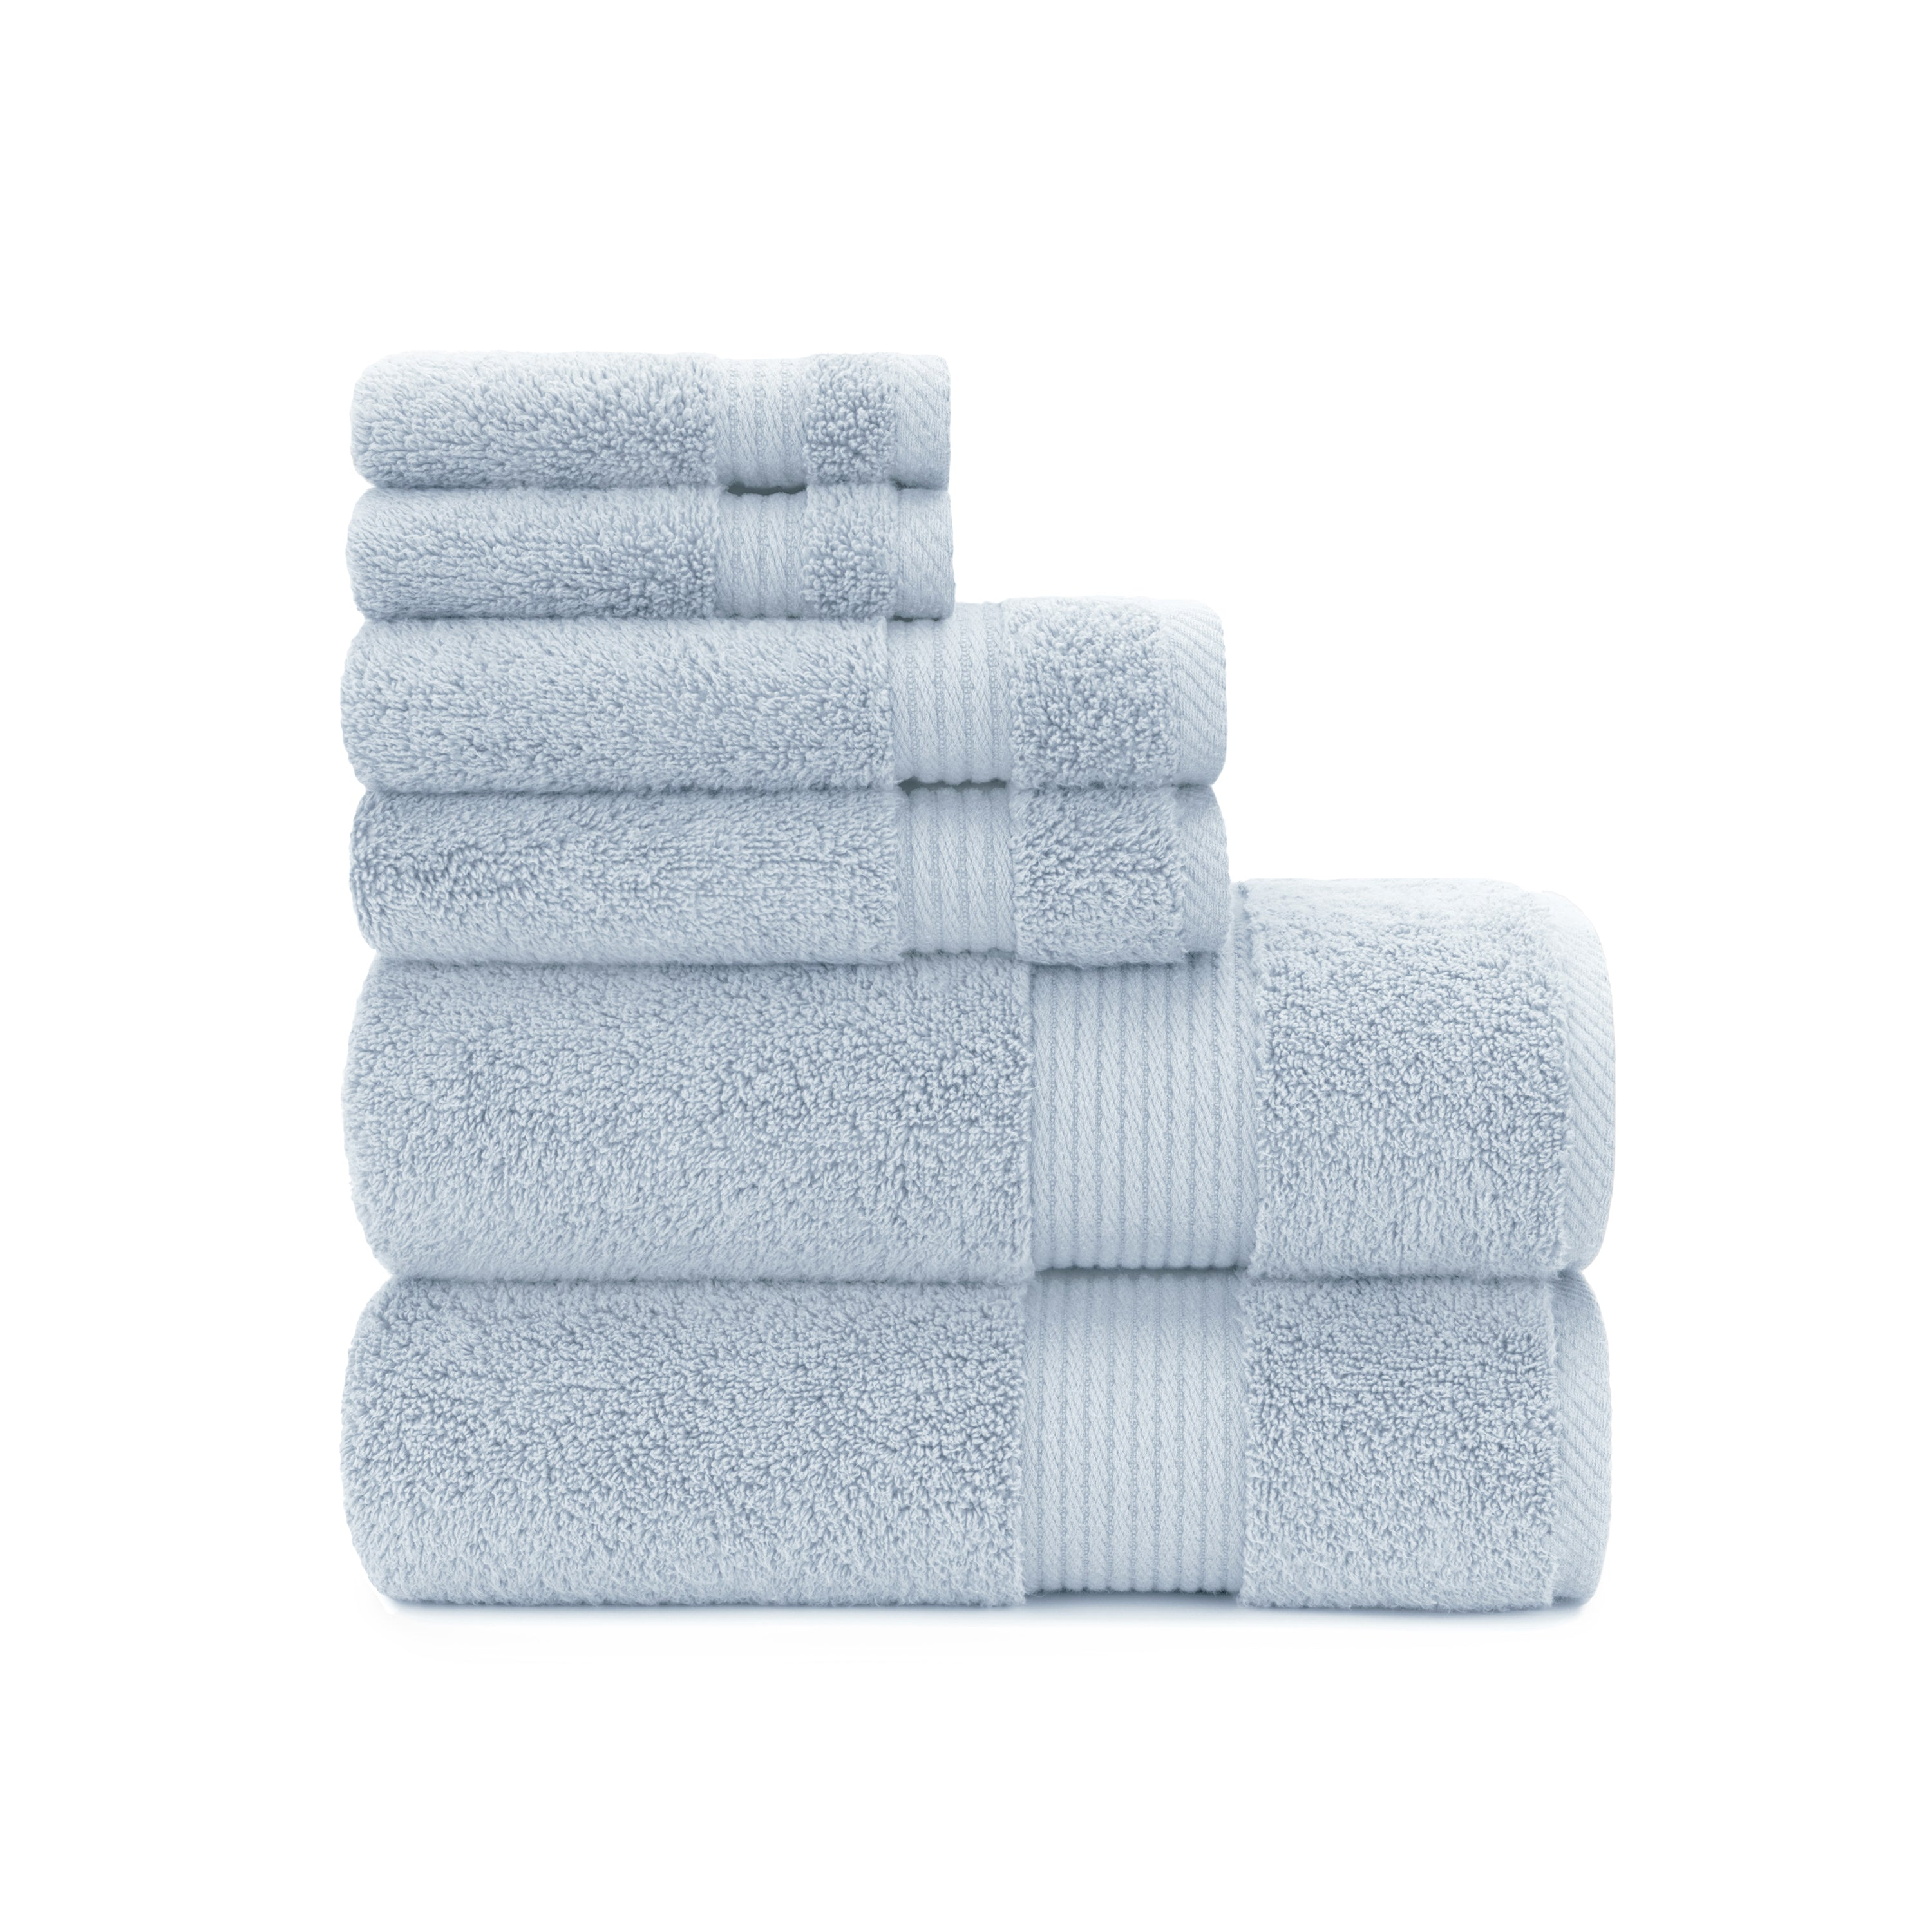 Suitable For Home Use, Bathroom Towels, Spa and Kitchen Towel Set ...